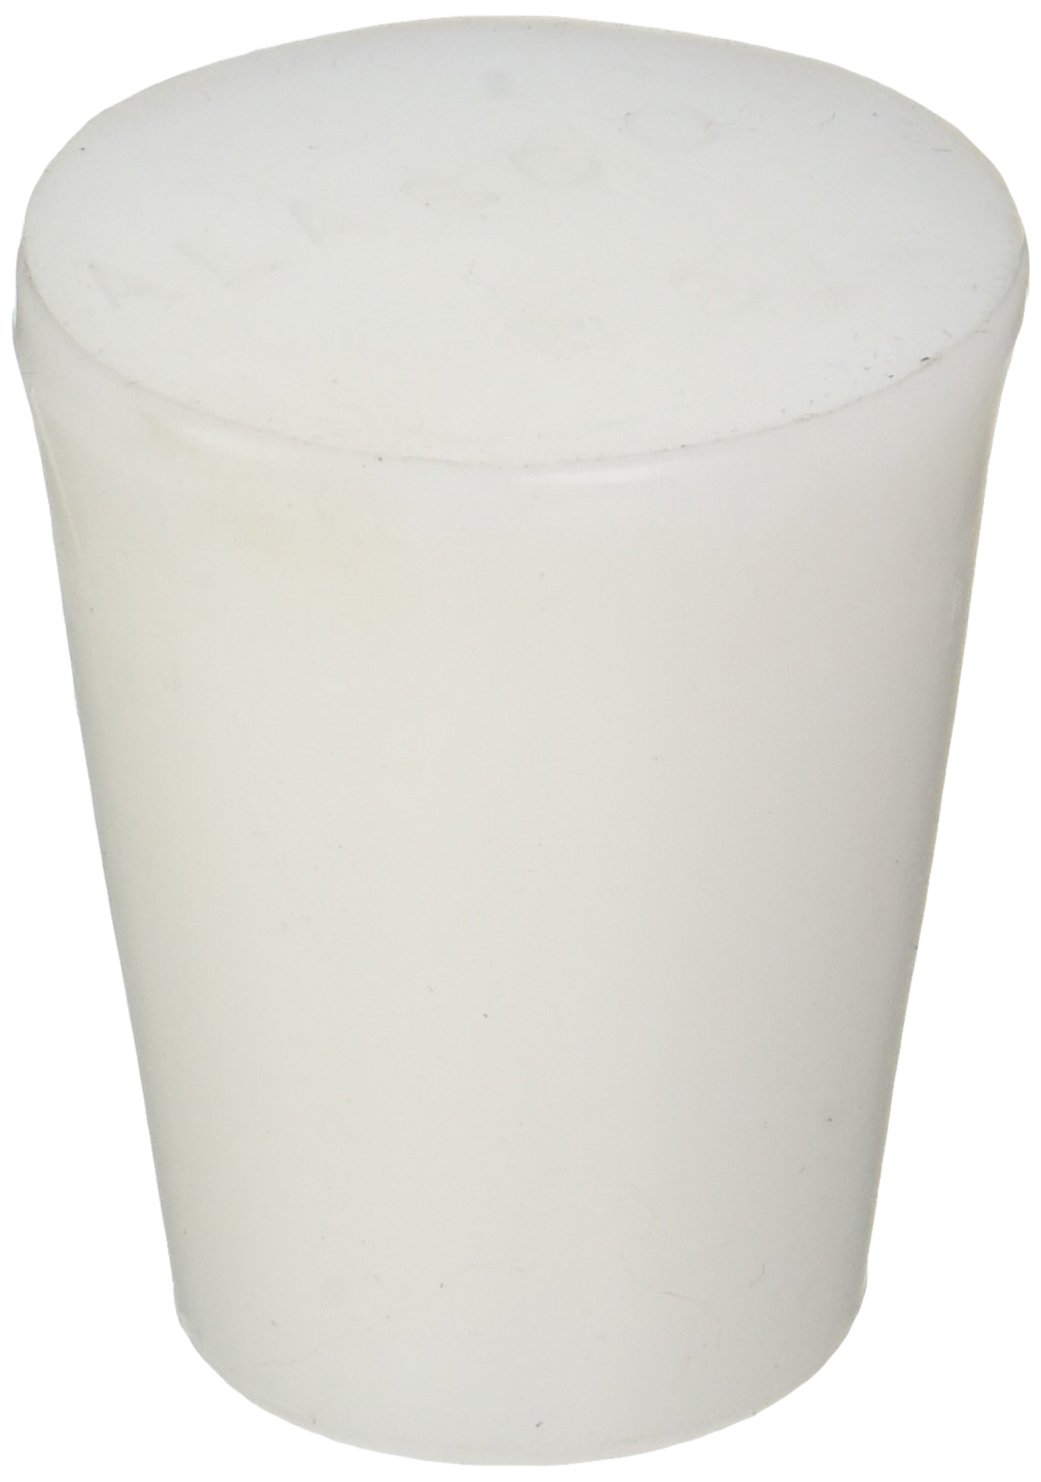 Eagle FE488 Silicone Bung for Small Barrel, Solid